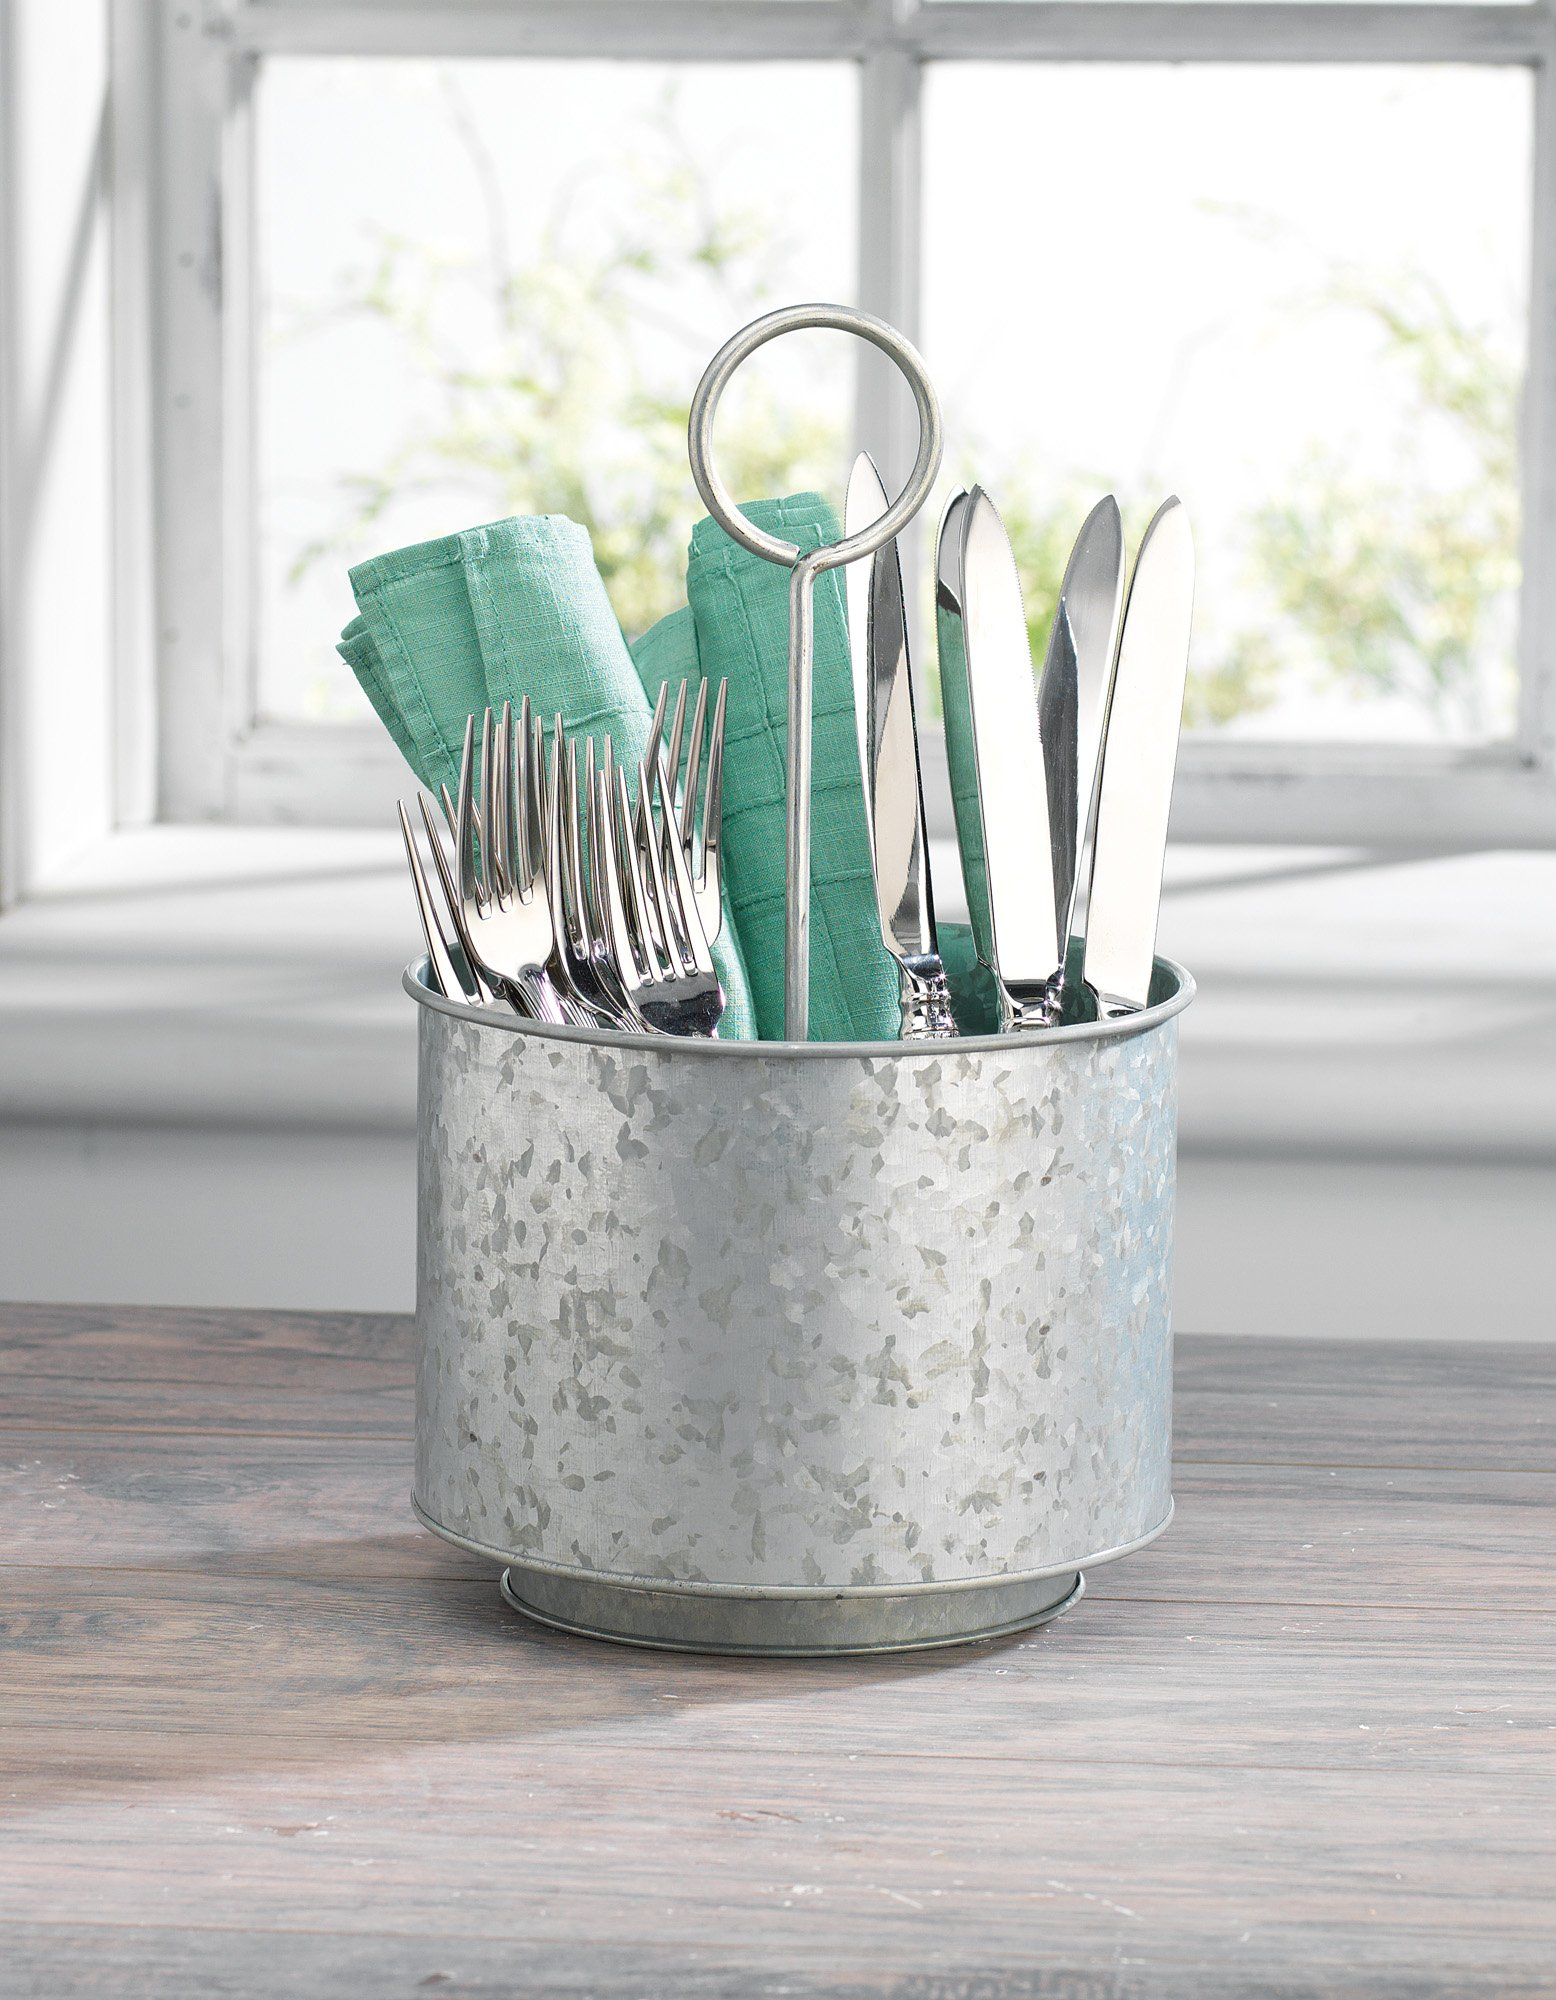 KOVOT Galvanized Rotating Utensil Caddy & Organizer | Rustic & Country Style Decor | Measures 7.5'' x 7.5'' x 12.5''H by Kovot (Image #2)